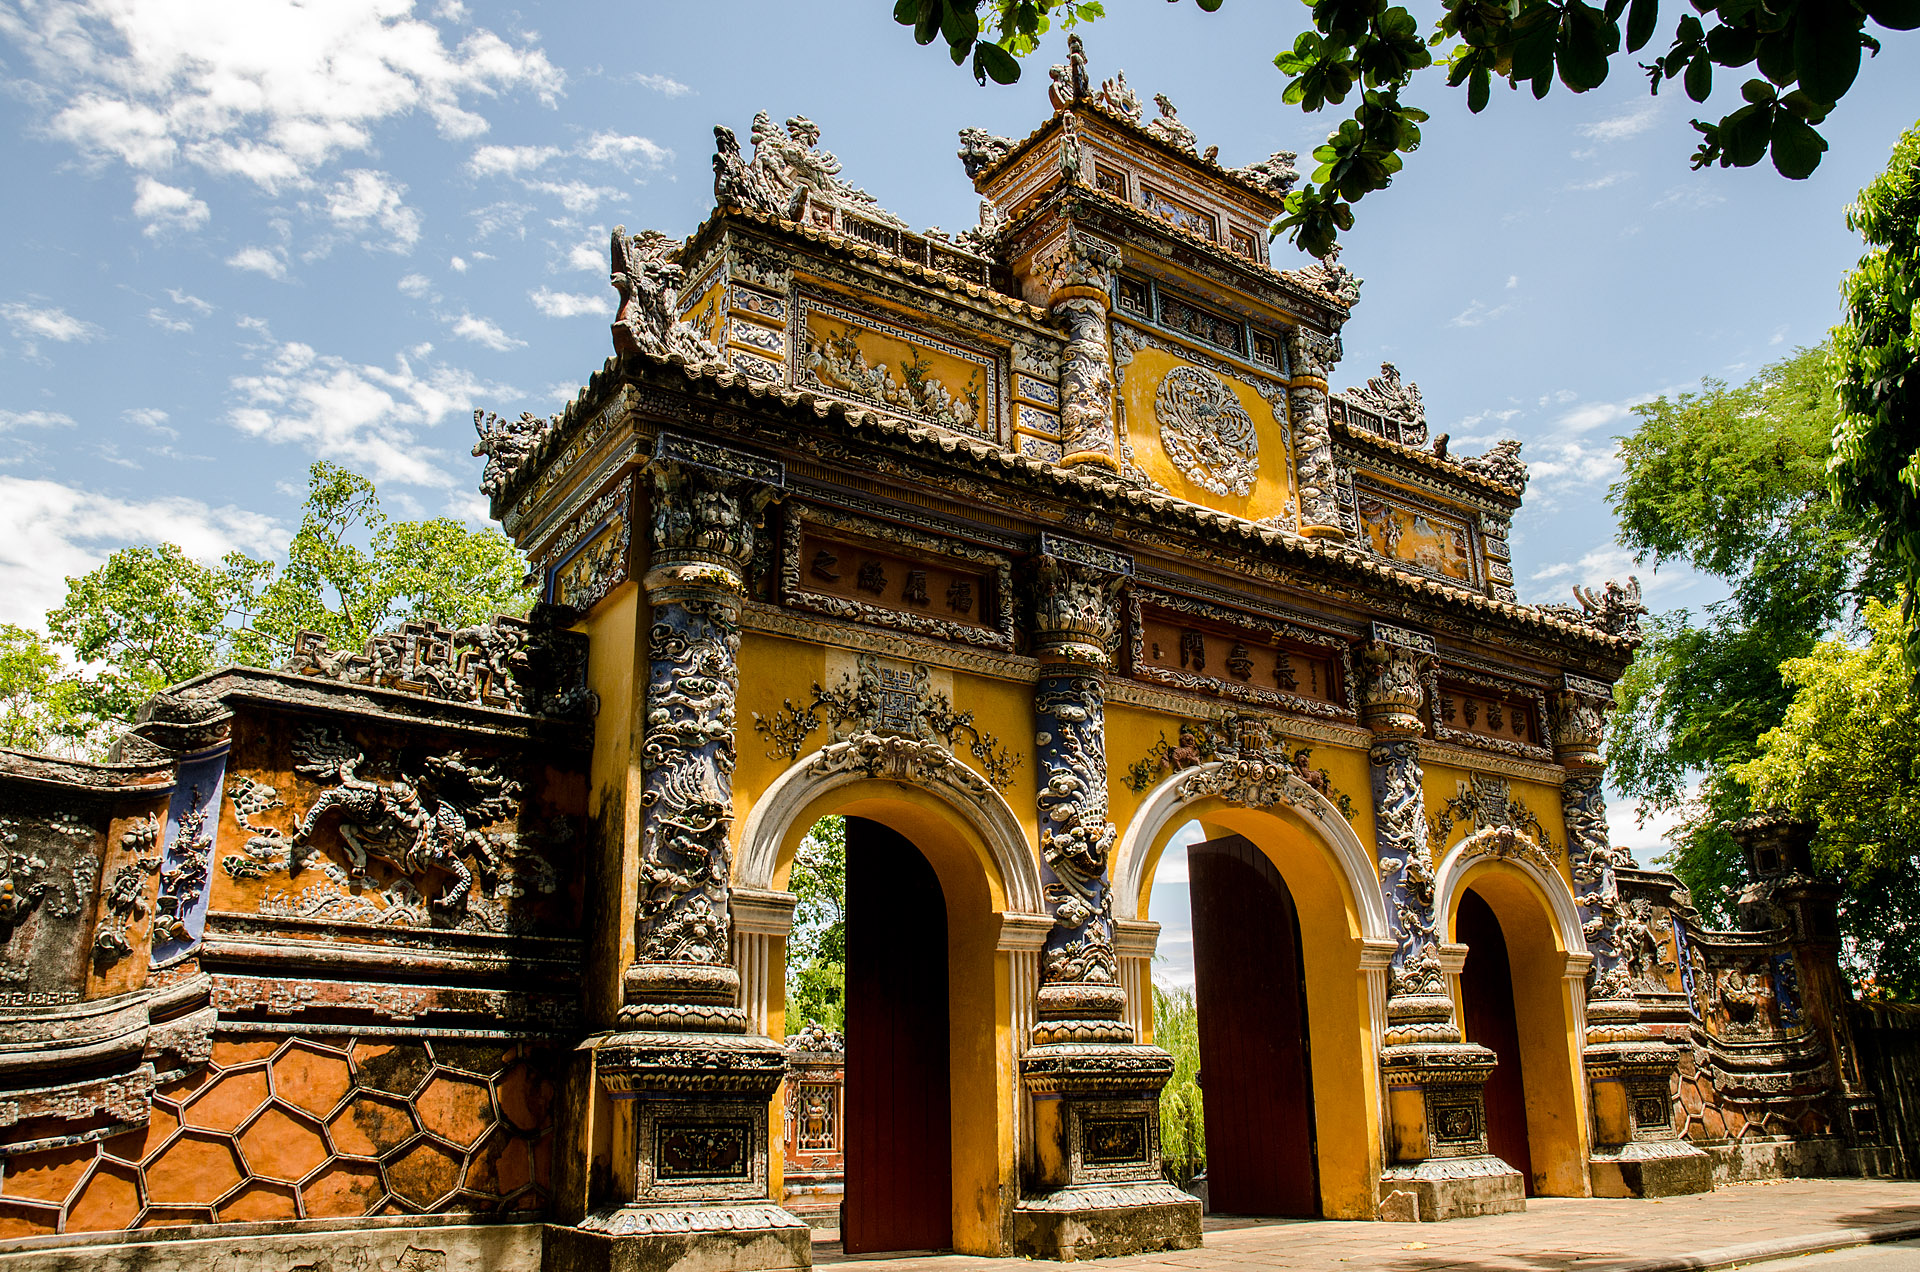 Gate to Truong Sanh Residence